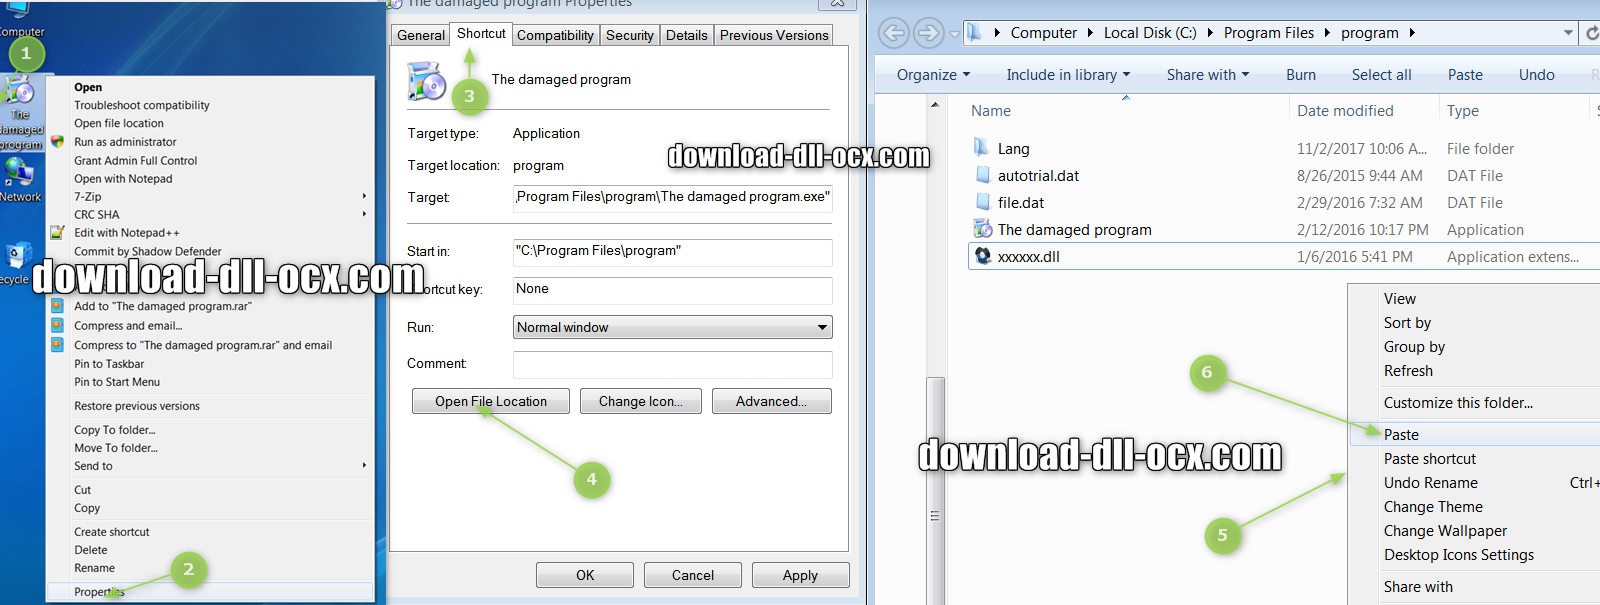 how to install wmspdmod.dll file? for fix missing